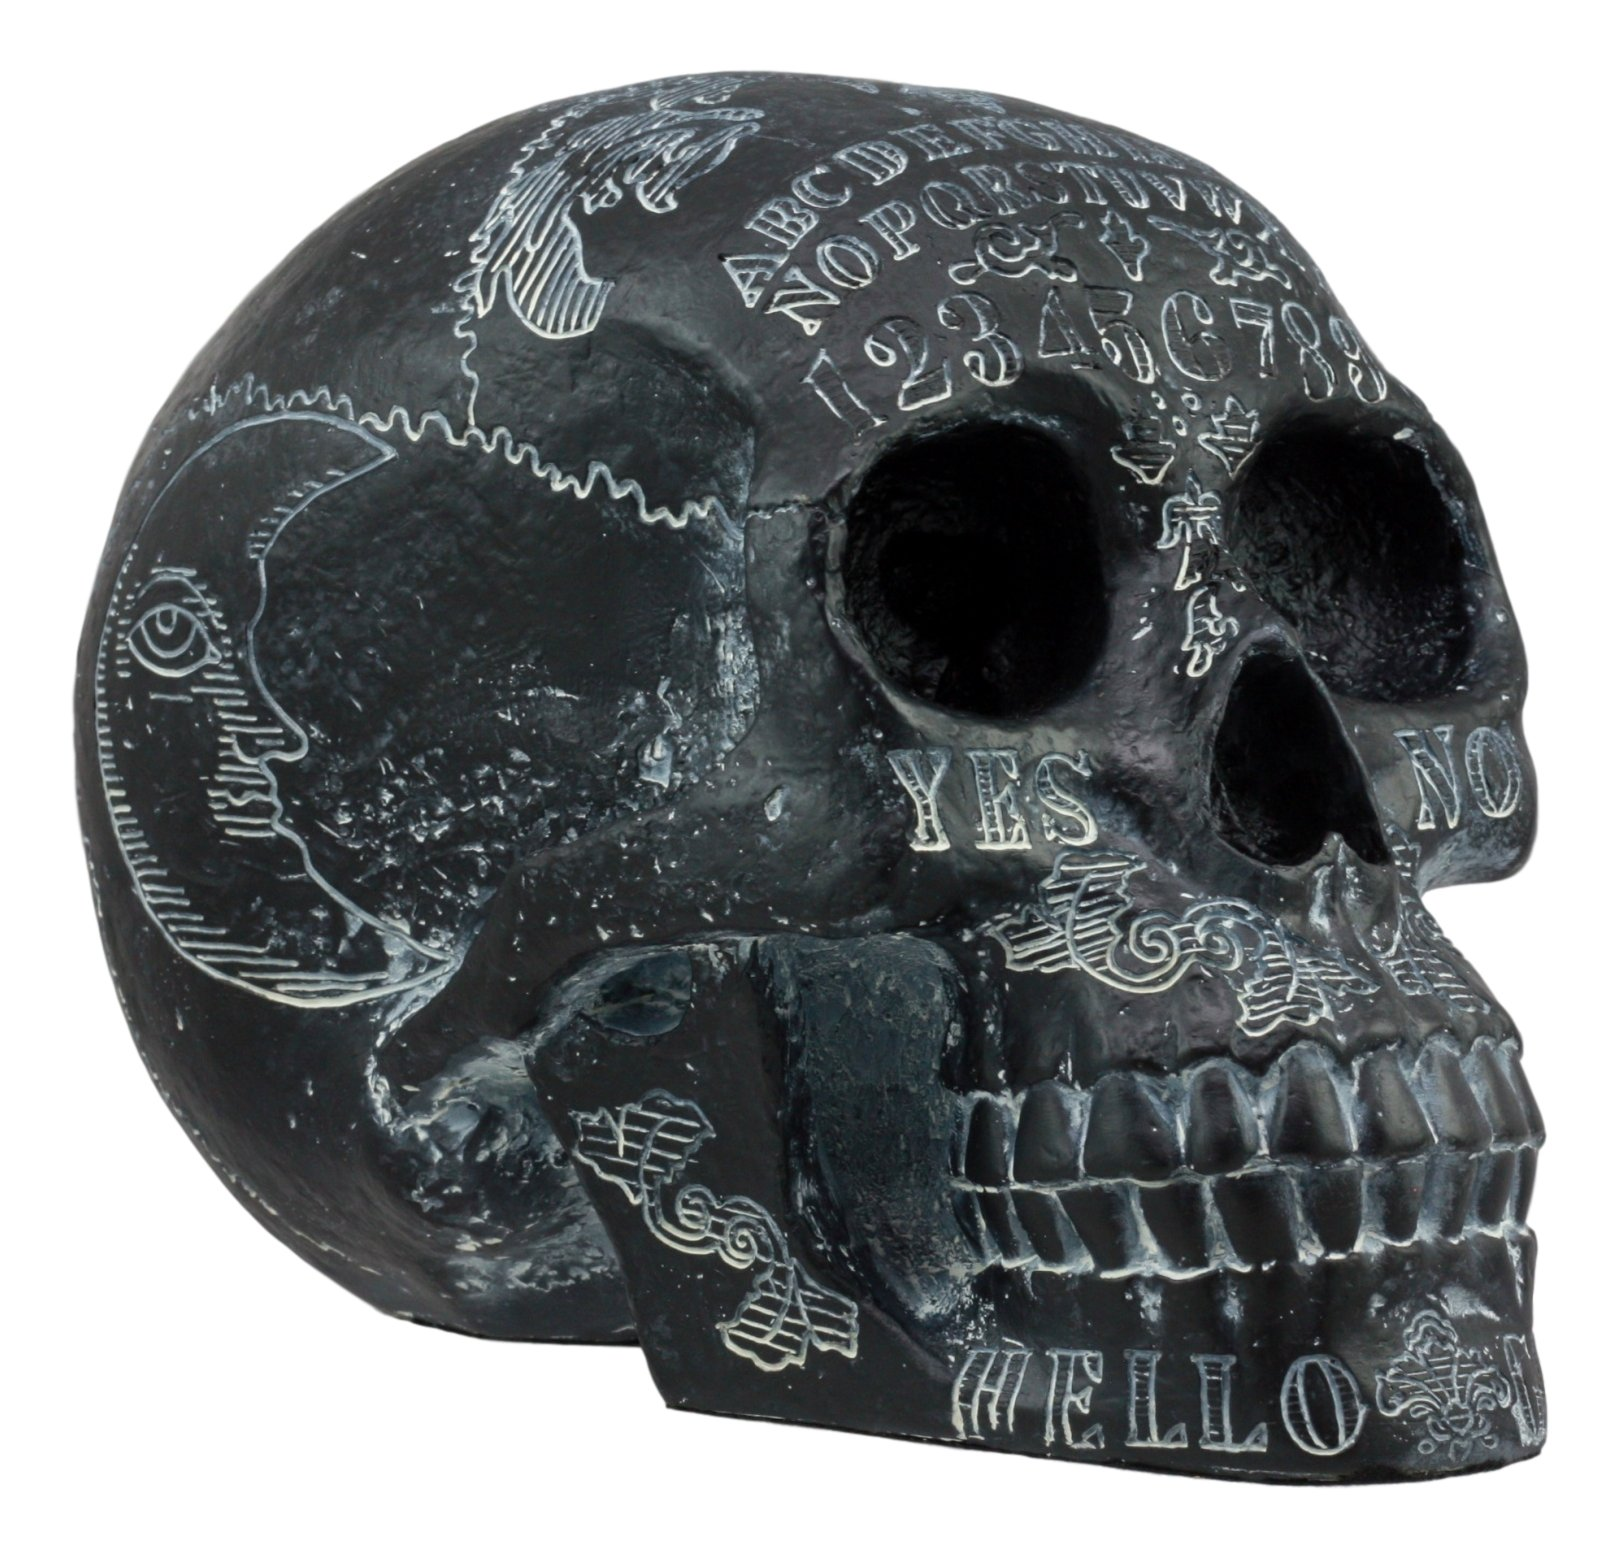 Ebros Black Solar Astrology Paranormal Ouija Spirit Skull Statue 8.5''Long Supernatural Occultist Witchcraft Medium Sculpture As Home Decorative Halloween Party Centerpiece